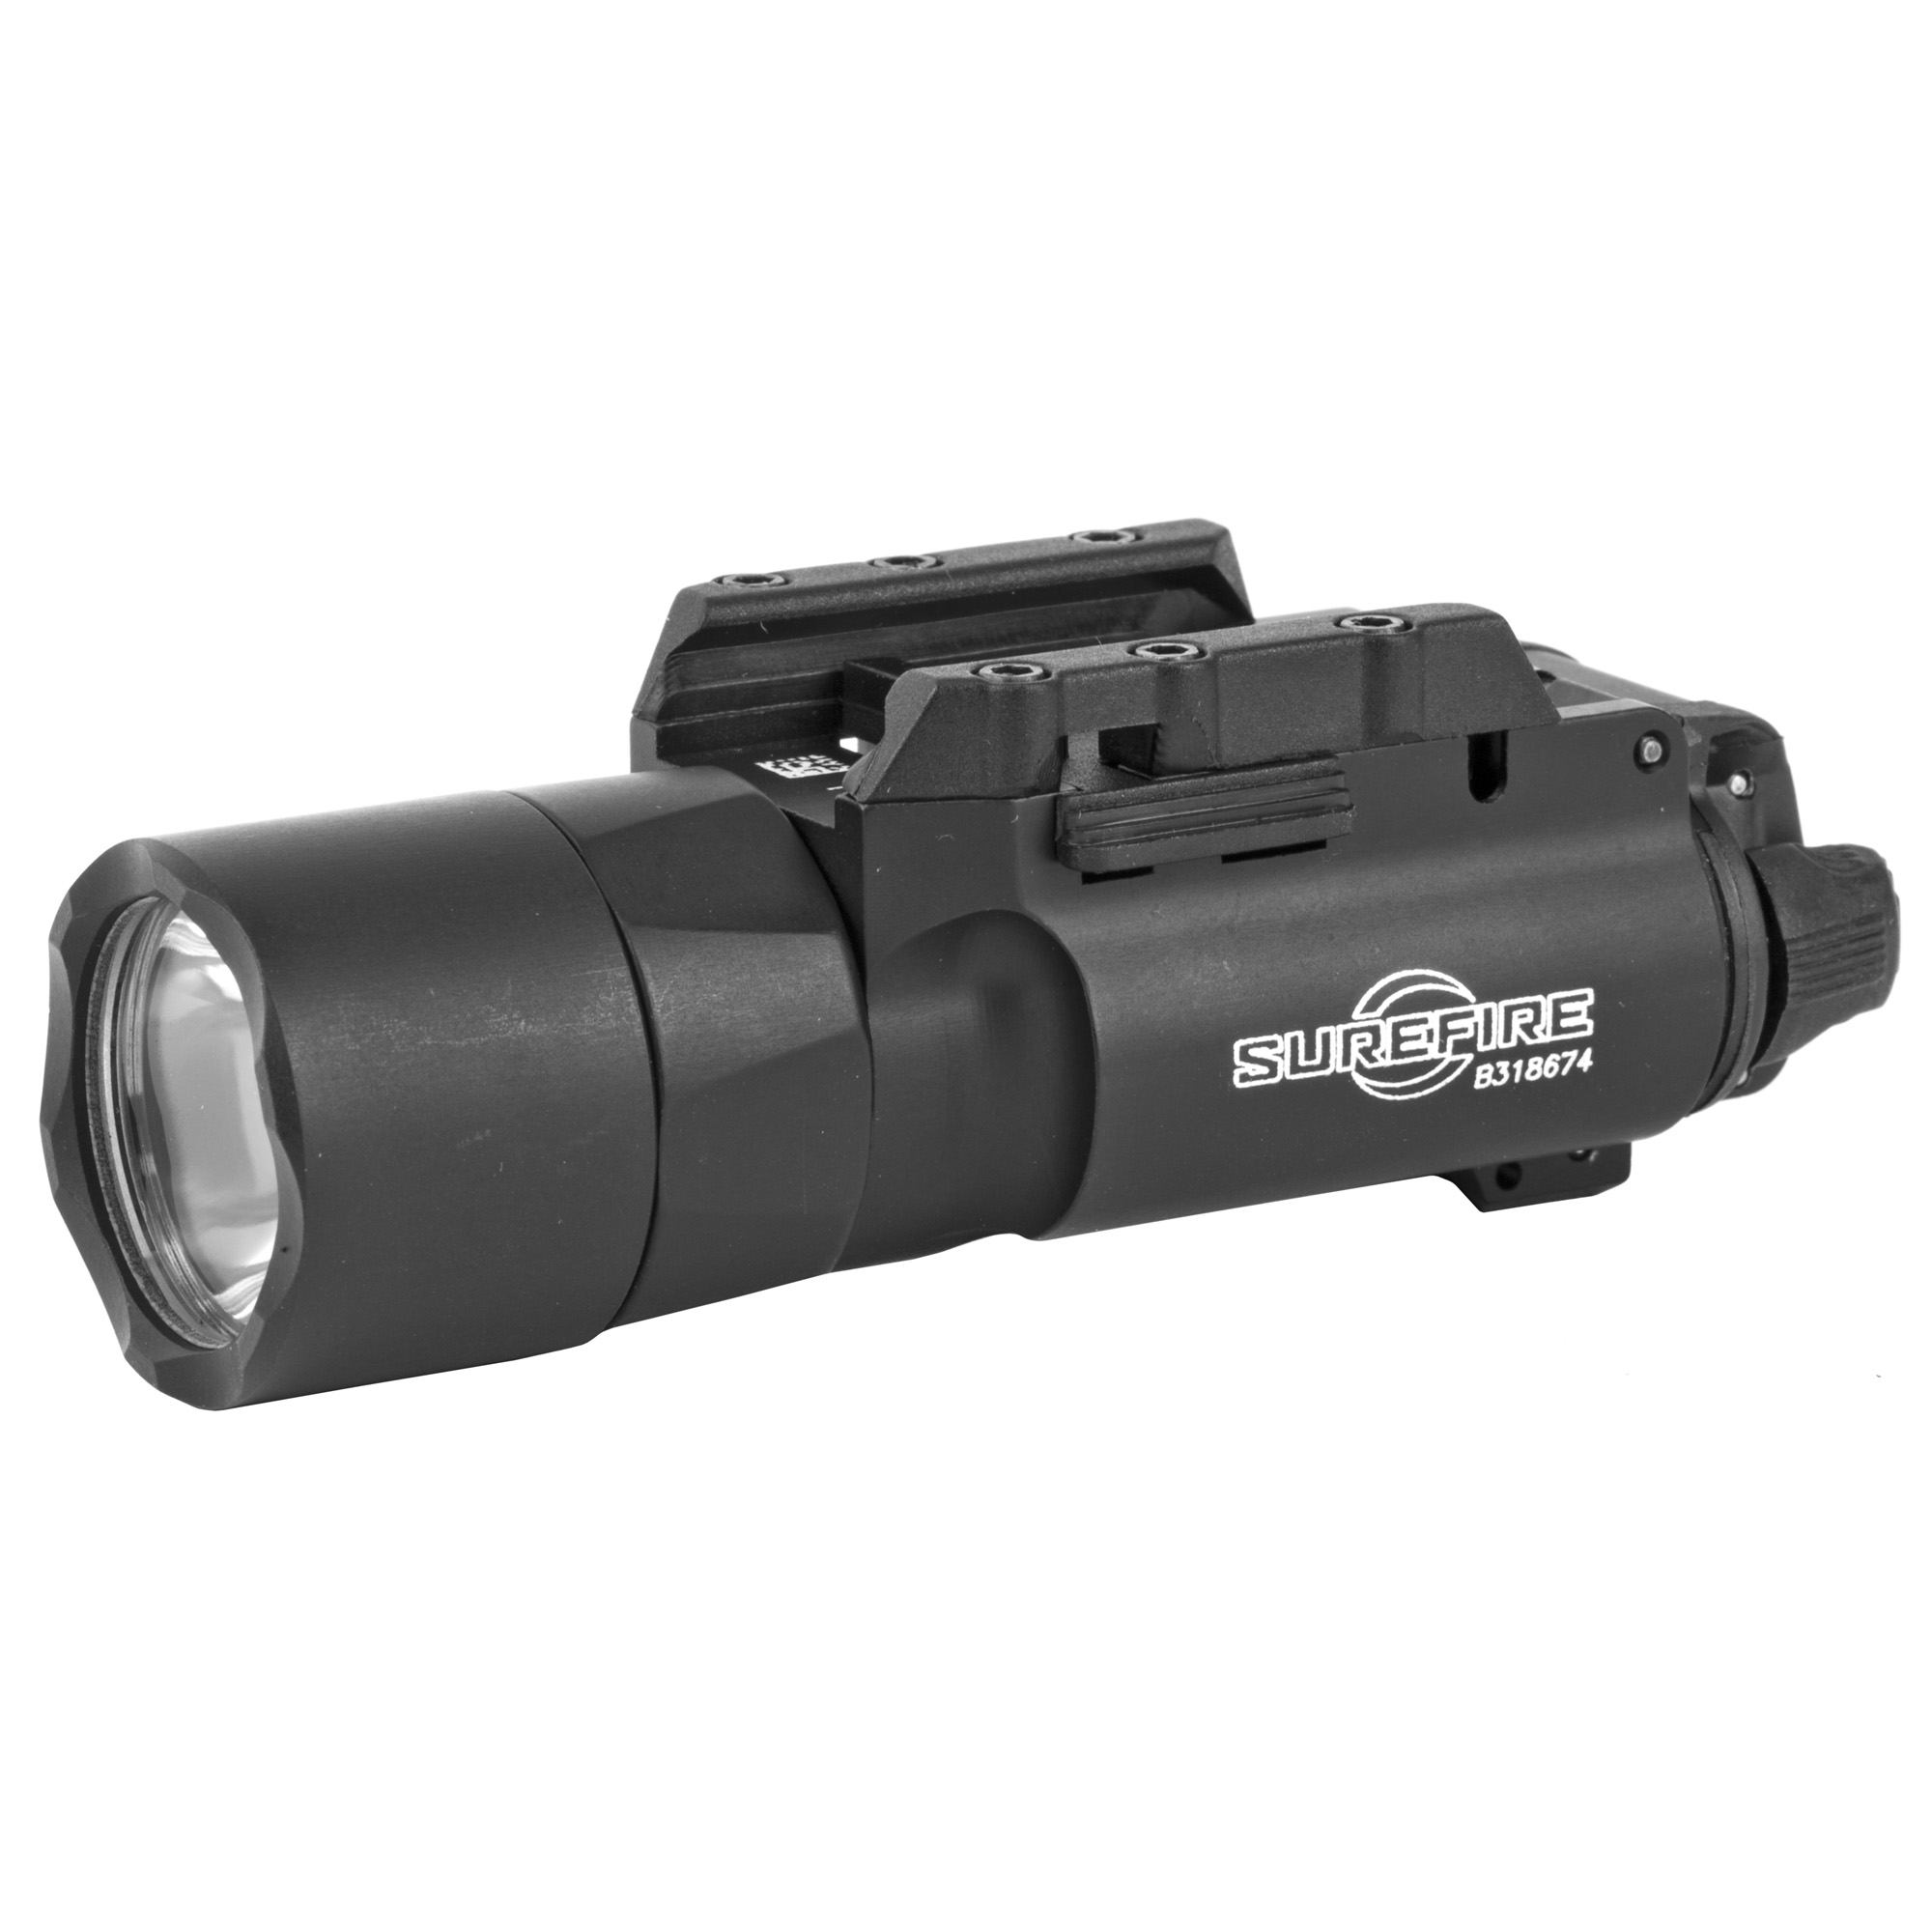 """This enhanced version of Surefire's best-selling X300 Ultra now delivers a stunning 1""""000 lumens of LED-generated output focused by a precision TIR lens"""" creating a far-reaching high intensity beam - with a larger center spot - that offers the power to positively identify threats at significant distances while temporarily impairing an adversary's vision. This intense beam also provides extensive peripheral illumination for maintaining situational awareness. Activating the X300 Ultra is done via ambidextrous switching located at the rear of body"""" providing one-finger control - press the switch on either side for momentary-on activation"""" flip up or down for constant-on activation. Optional DG grip switches (for pistols) and a pressure activated XT07 tape switch (for long guns) permit the X300 Ultra to be activated without altering your grip on your weapon. The X300 Ultra can be attached to a pistol or a long gun since its Rail-Lock(R) system permits rapid attachment to and removal from either Universal or Picatinny rails. Its high-strength aerospace aluminum body is Mil-Spec Hard Anodized for superior toughness and is O-ring and gasket sealed to make it weatherproof."""